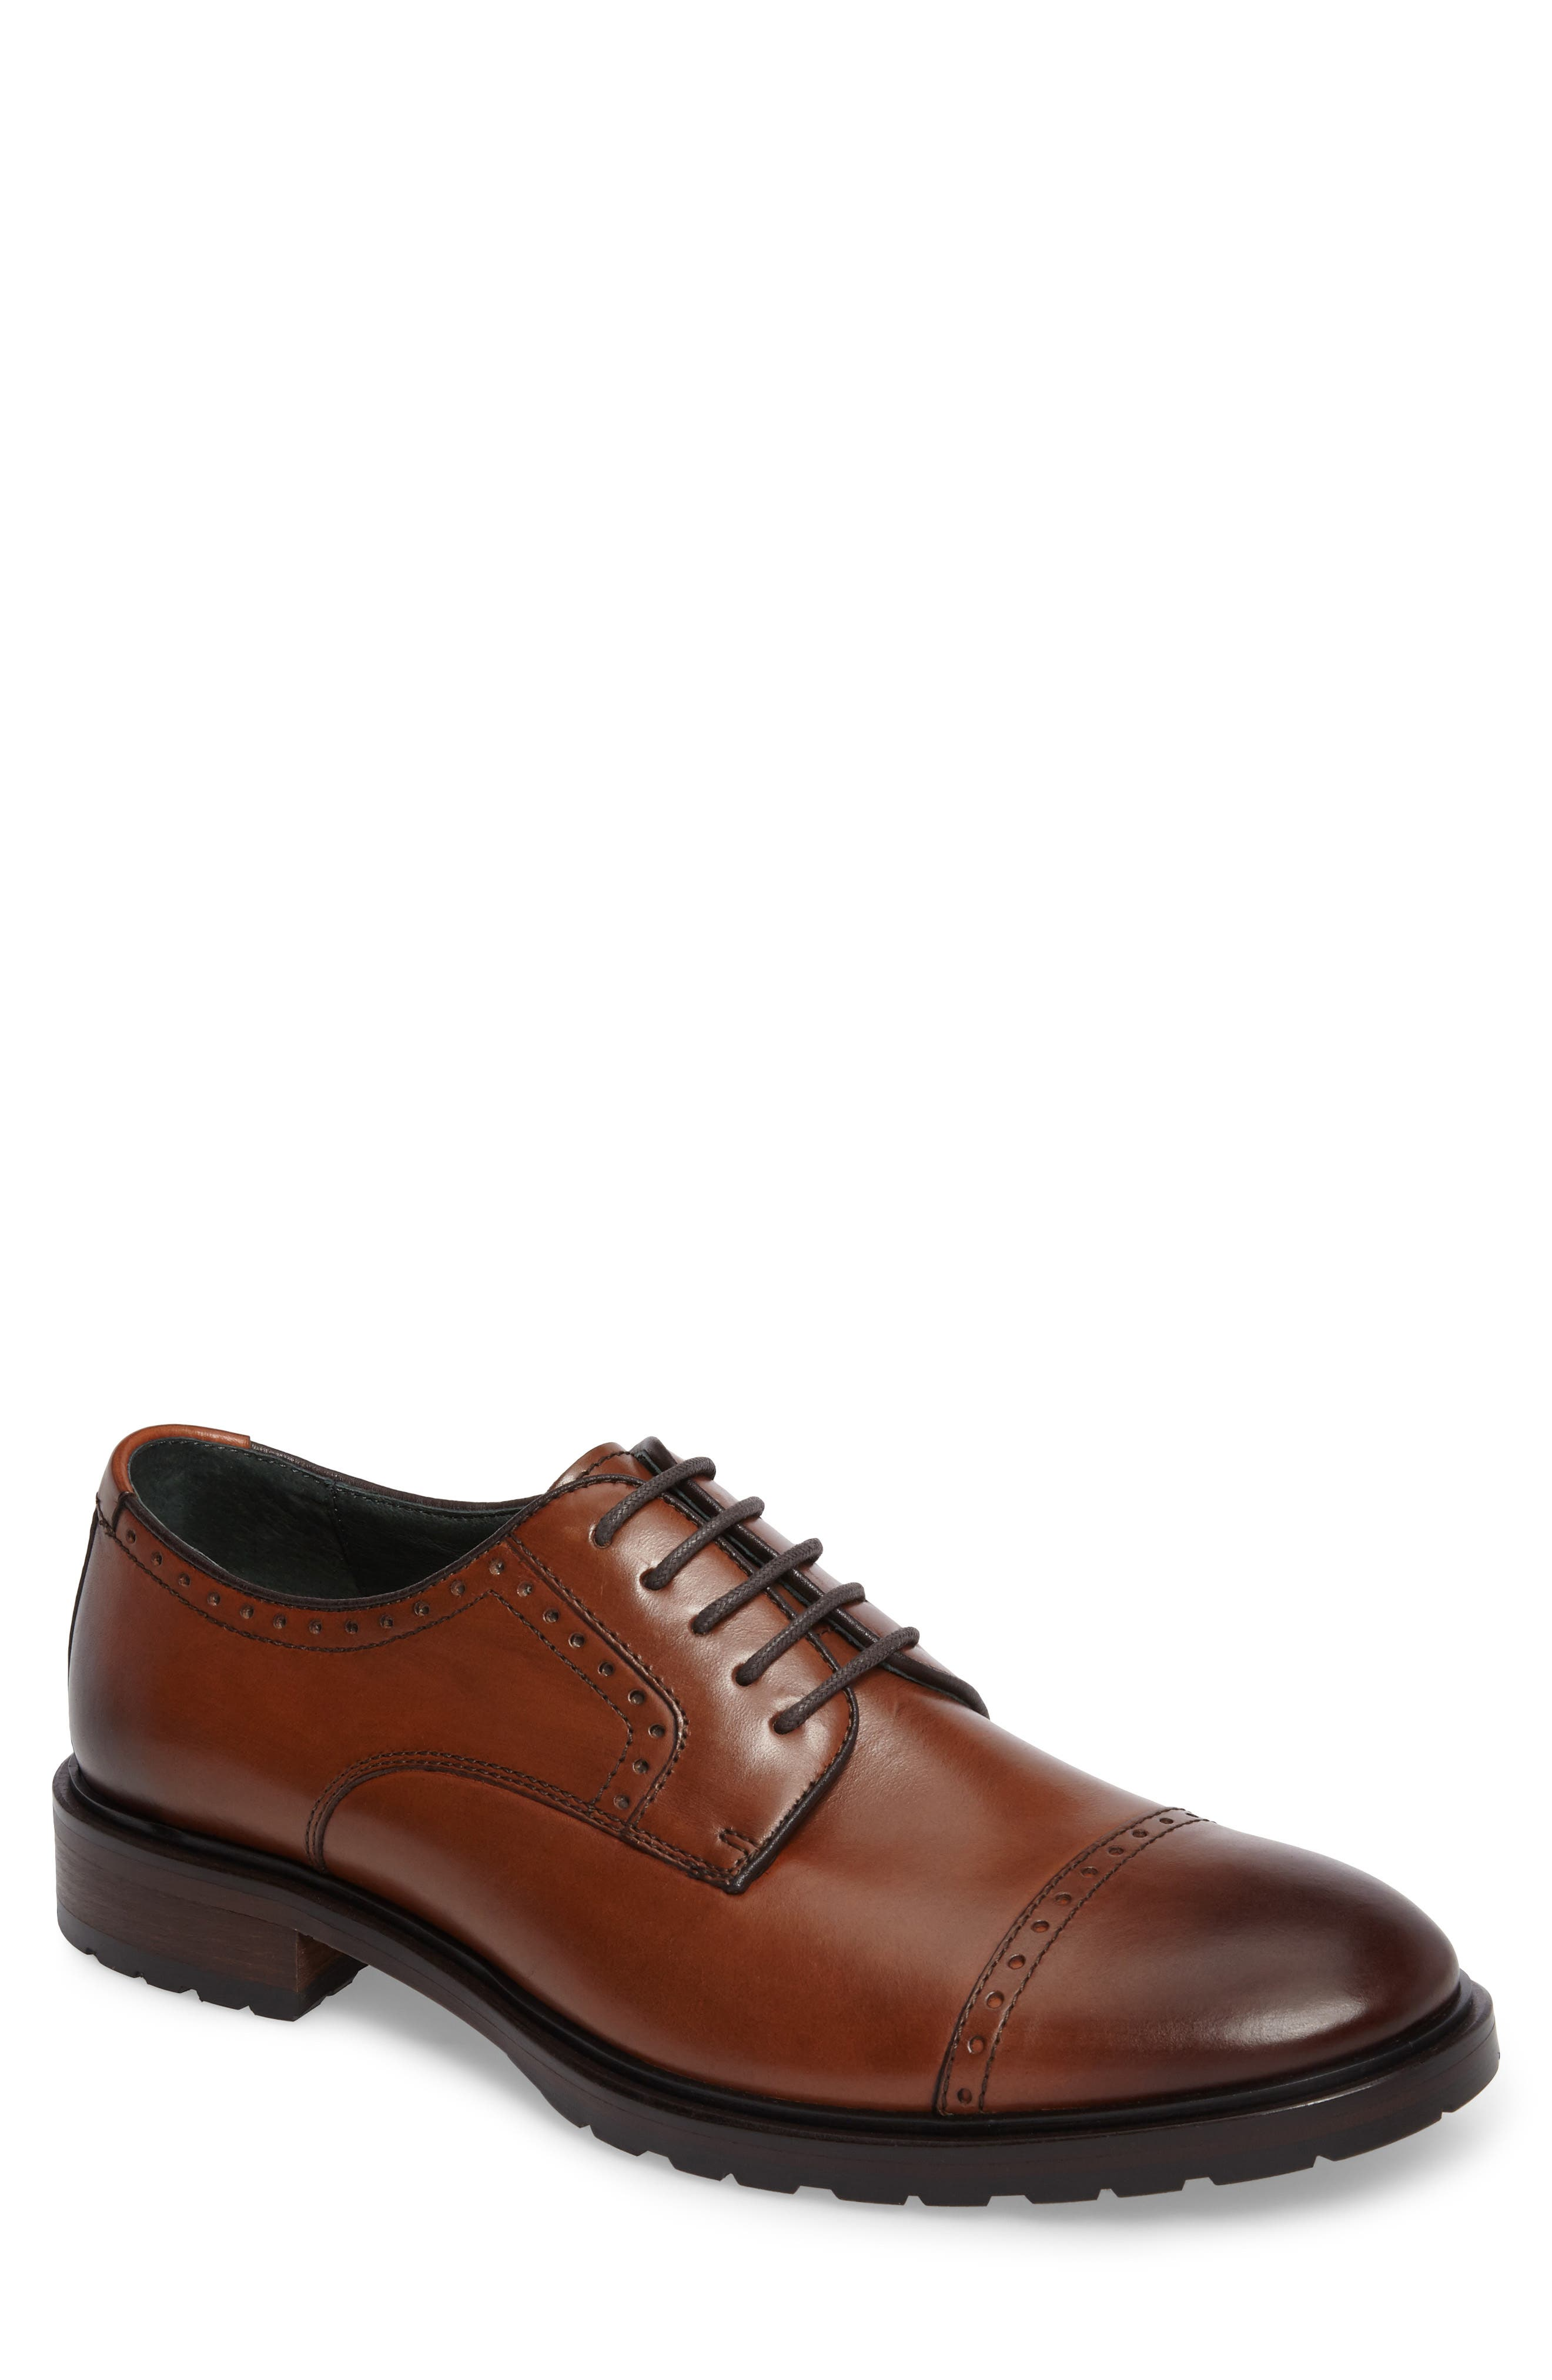 Myles Cap Toe Derby,                         Main,                         color, 211